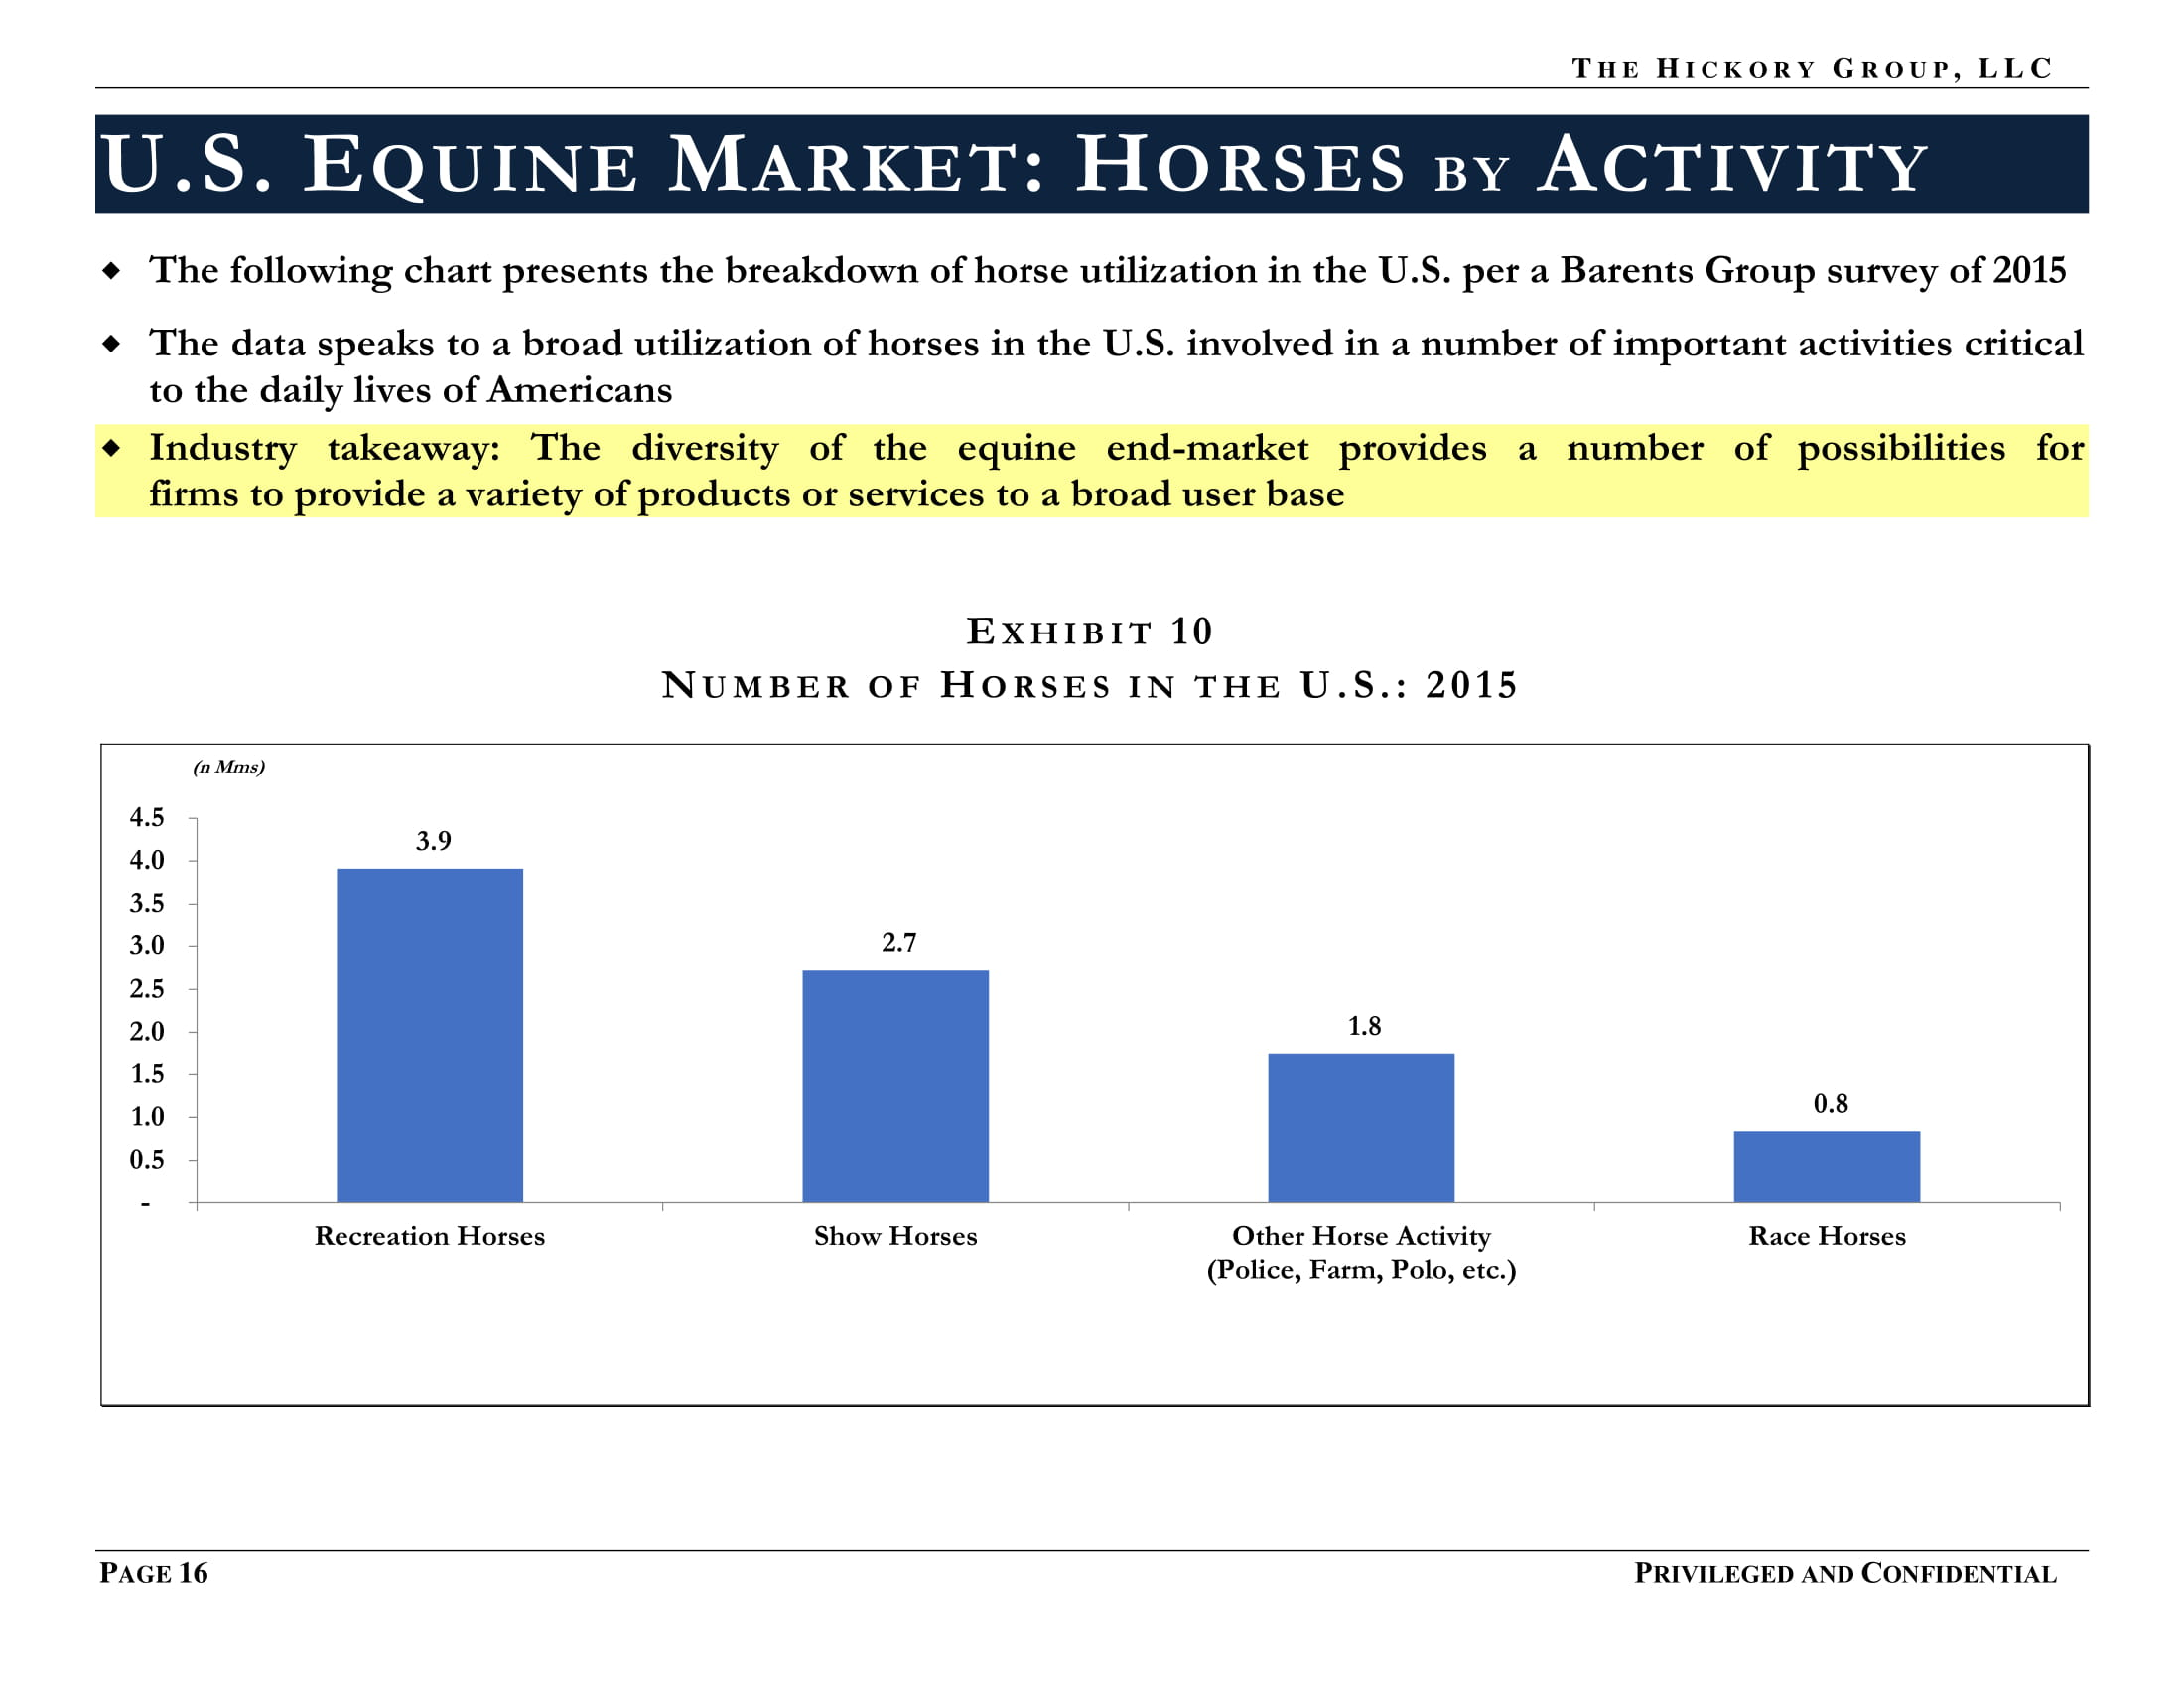 PUBLIC FINAL _Millennials and Equine Market Summary (15 November 2017) Privileged and Confidential-16.jpg